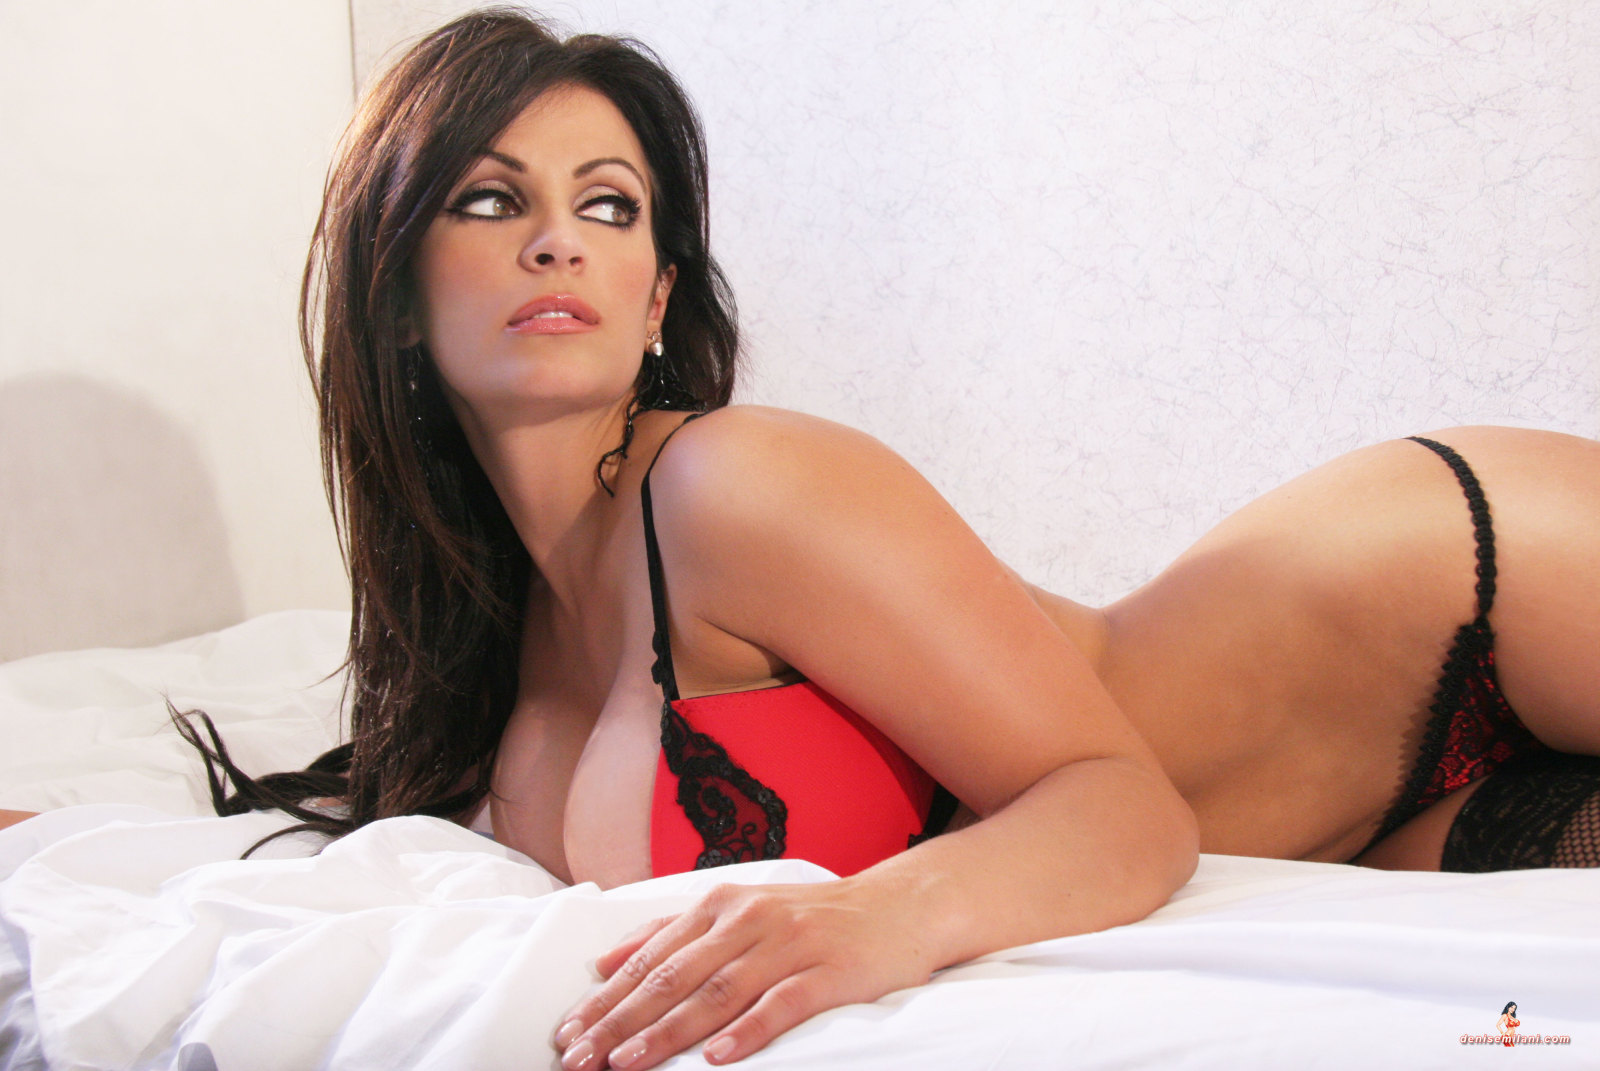 women for men hot escorts New South Wales